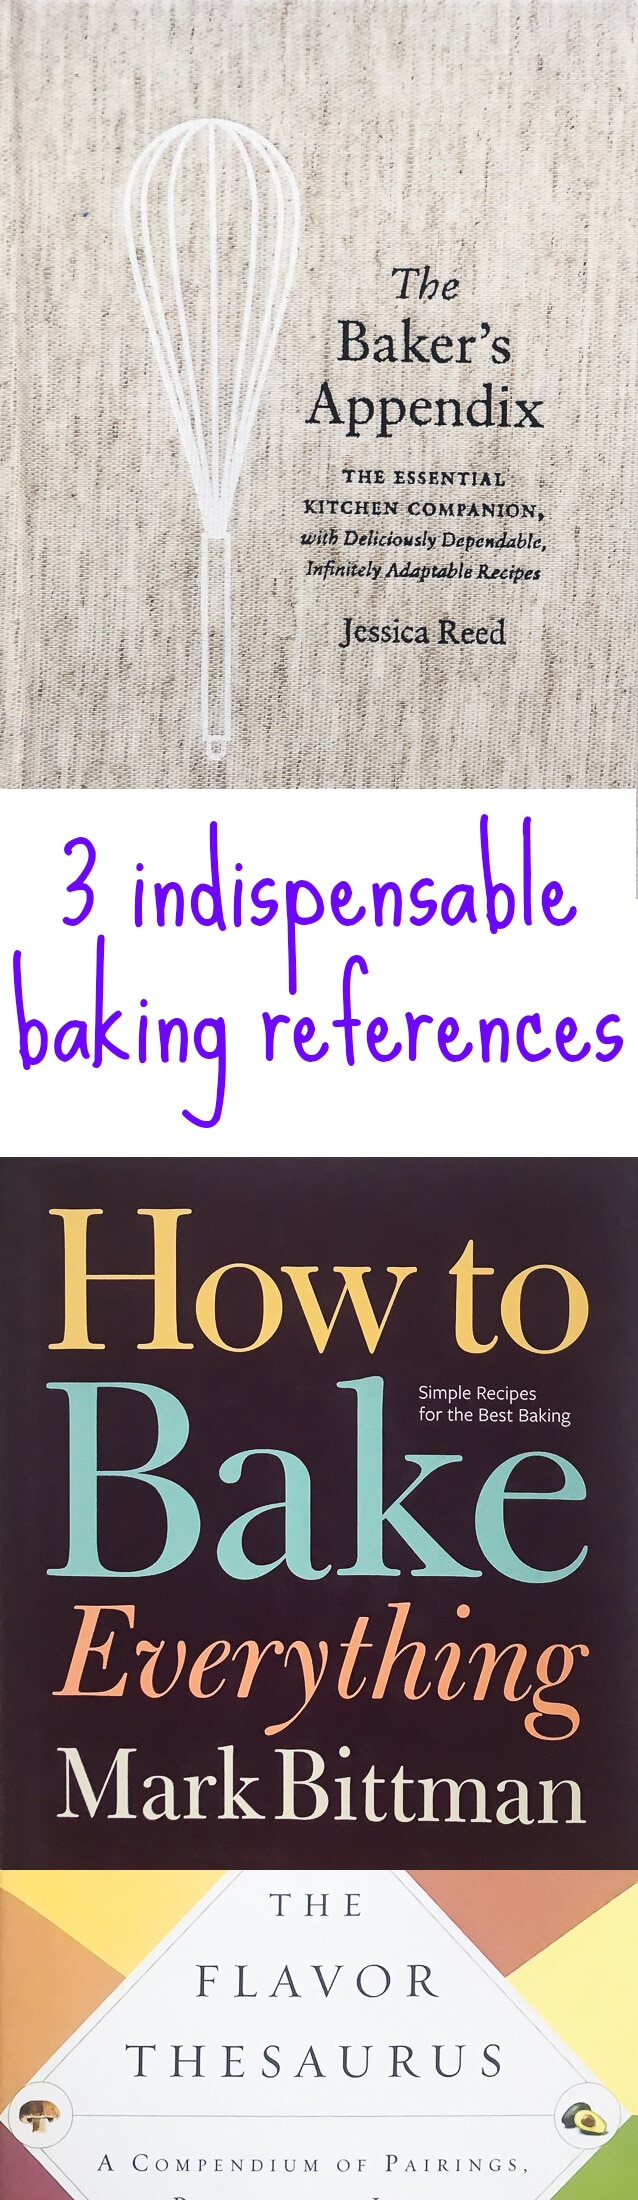 3 baking reference books that you should own to help you bake better